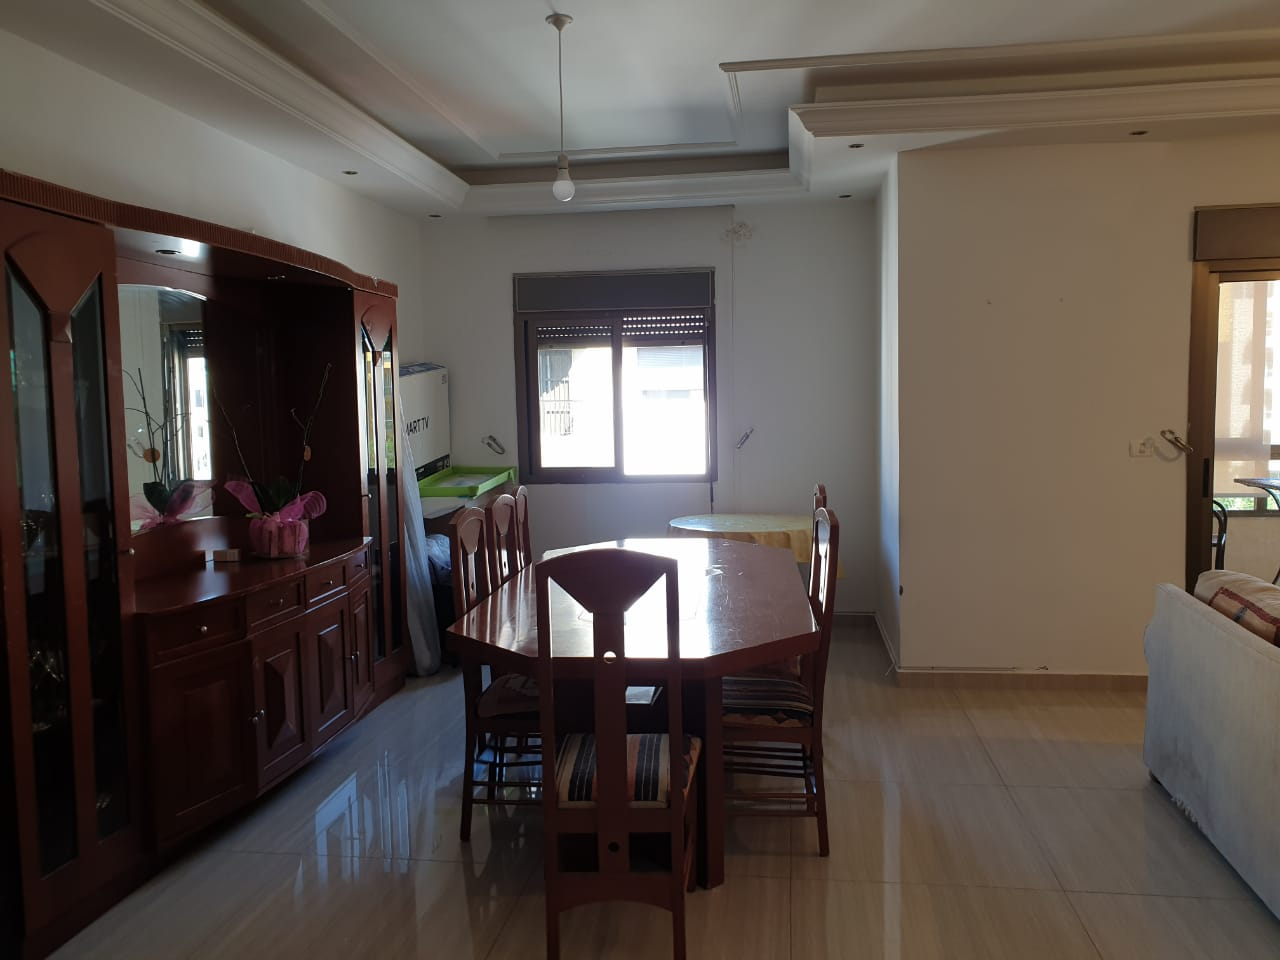 RL-2417 Apartment for Sale in Keserwan , Adonis - $ 290,000